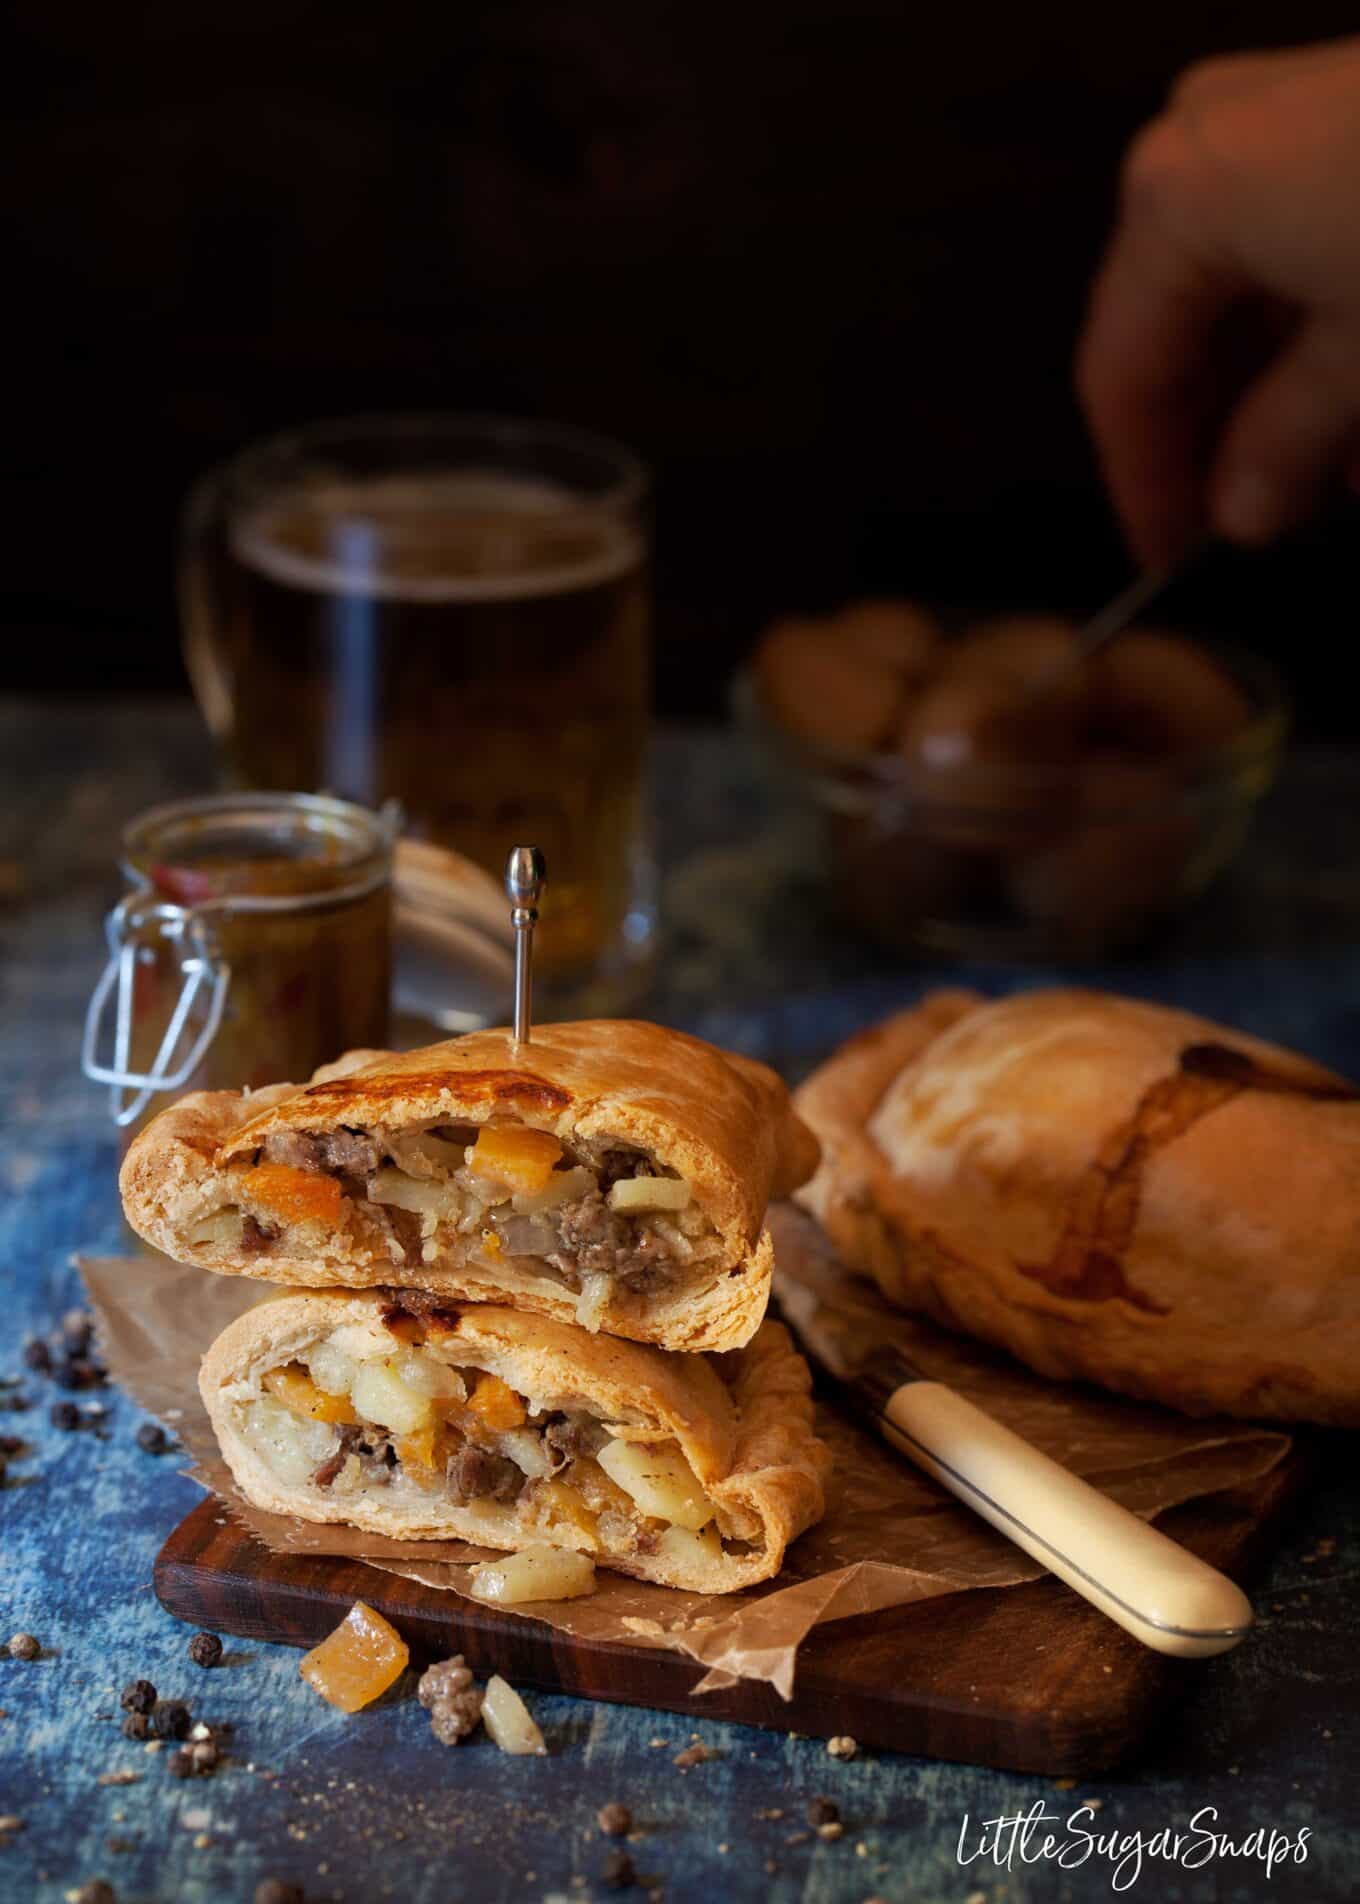 beef and horseradish pasties cut in half and stacked on top of each other to reveal meat, onion, potato and swede (rutabaga) inside with relish and beer in the background